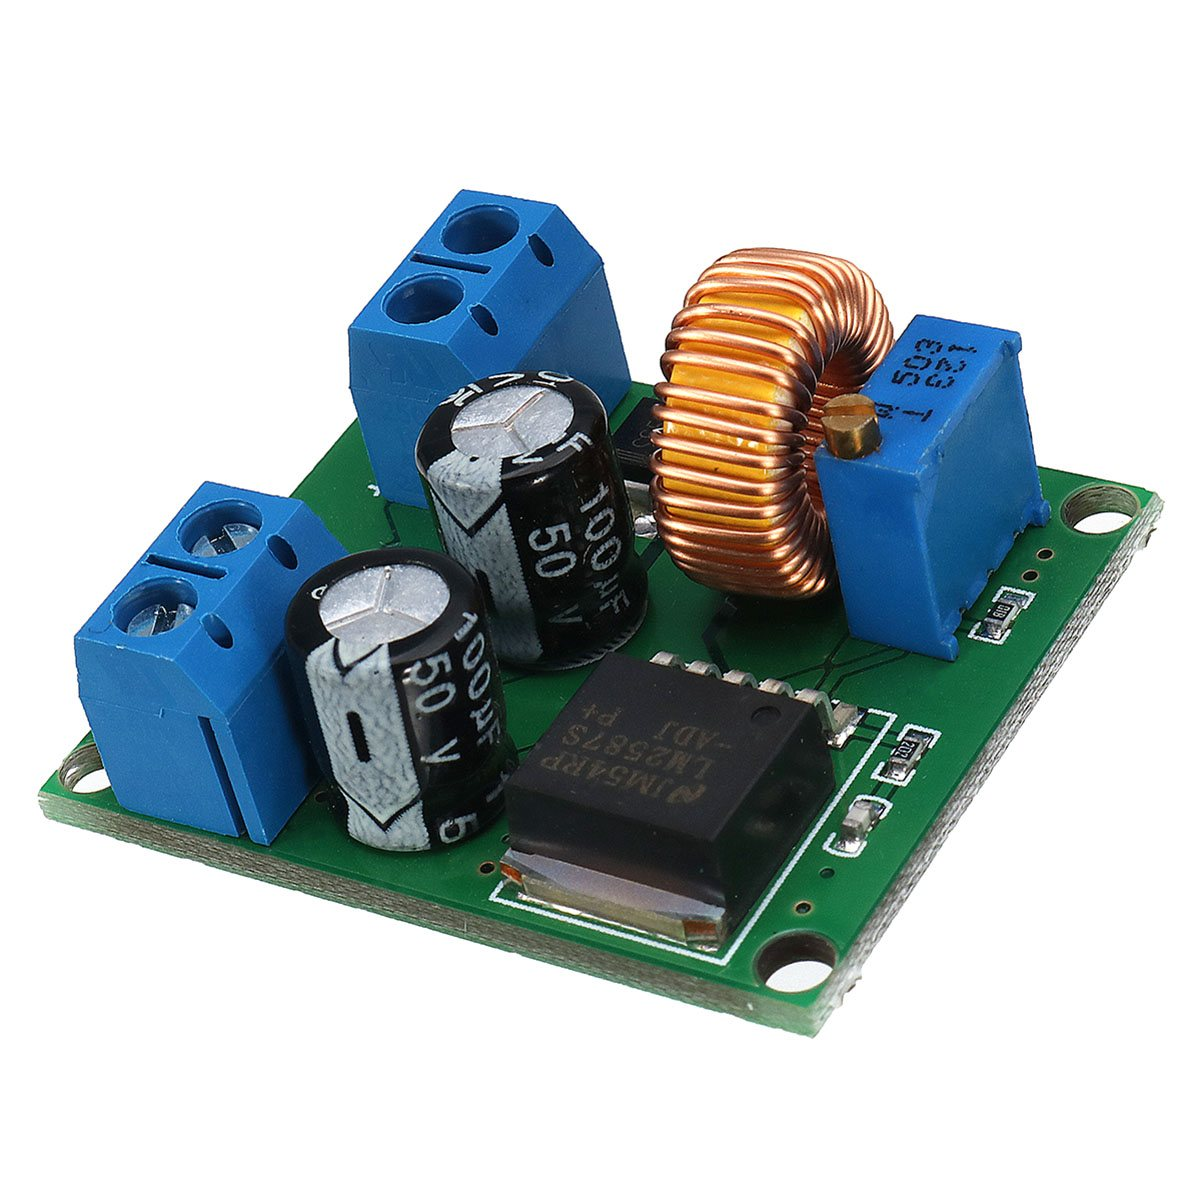 DC-DC 3V-35V To 4V-40V Adjustable Step Up Power Module 3V 5V 12V To 19V 24V 30V 36V High Power Boost Inverters Converter цена